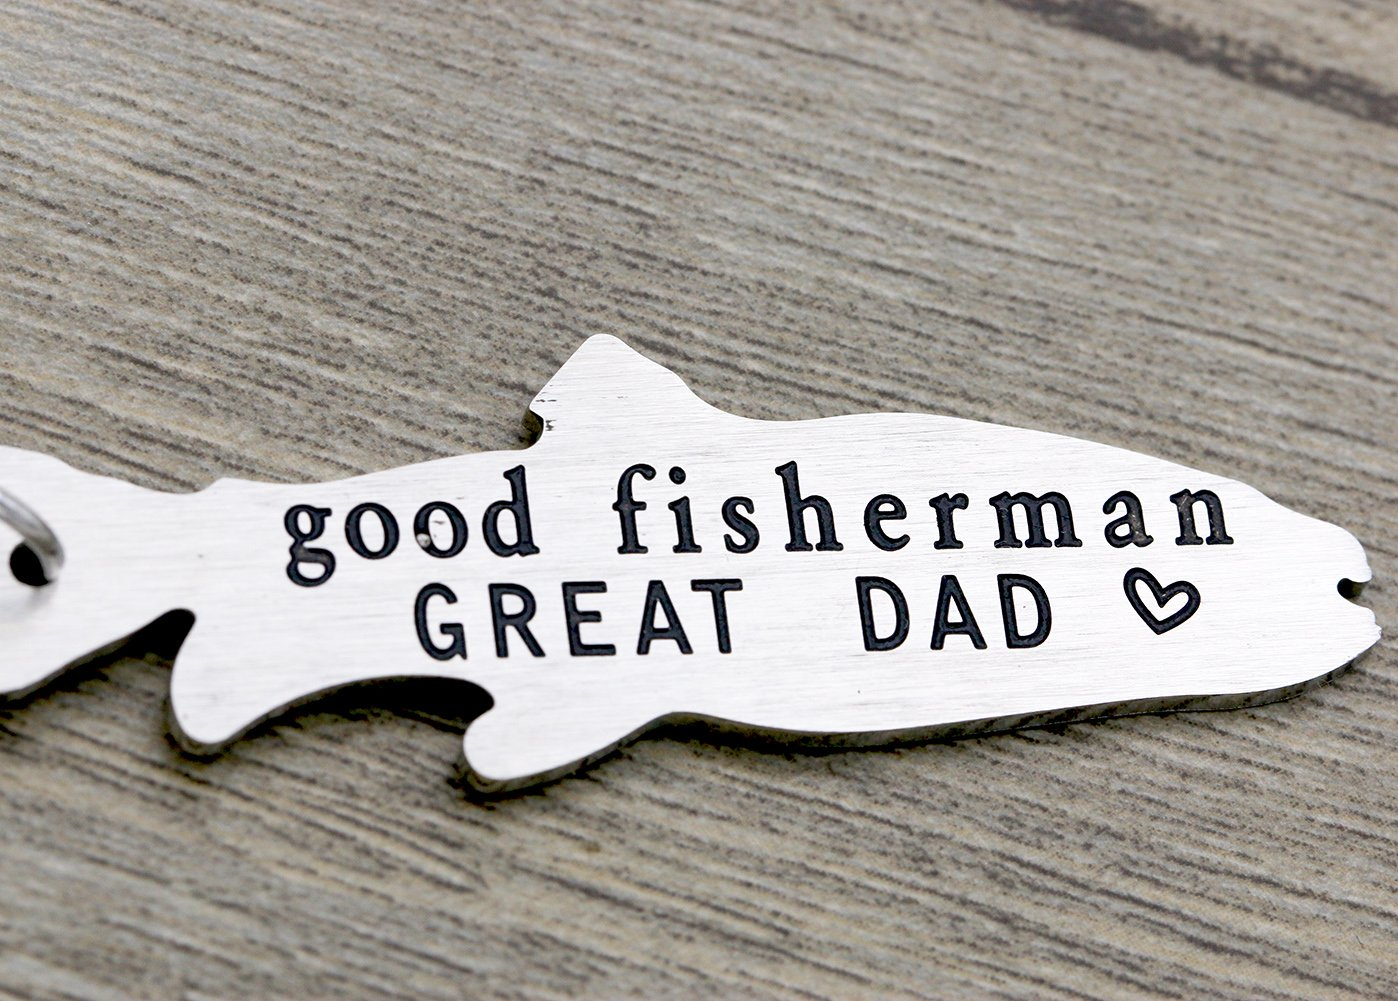 Melix Home Good Fisherman GREAT DAD Key Chain Gift for Dad from daughter son, Fathers Day Gift, Birthday Gift Key Ring Key Buckle … by Melix Home (Image #4)